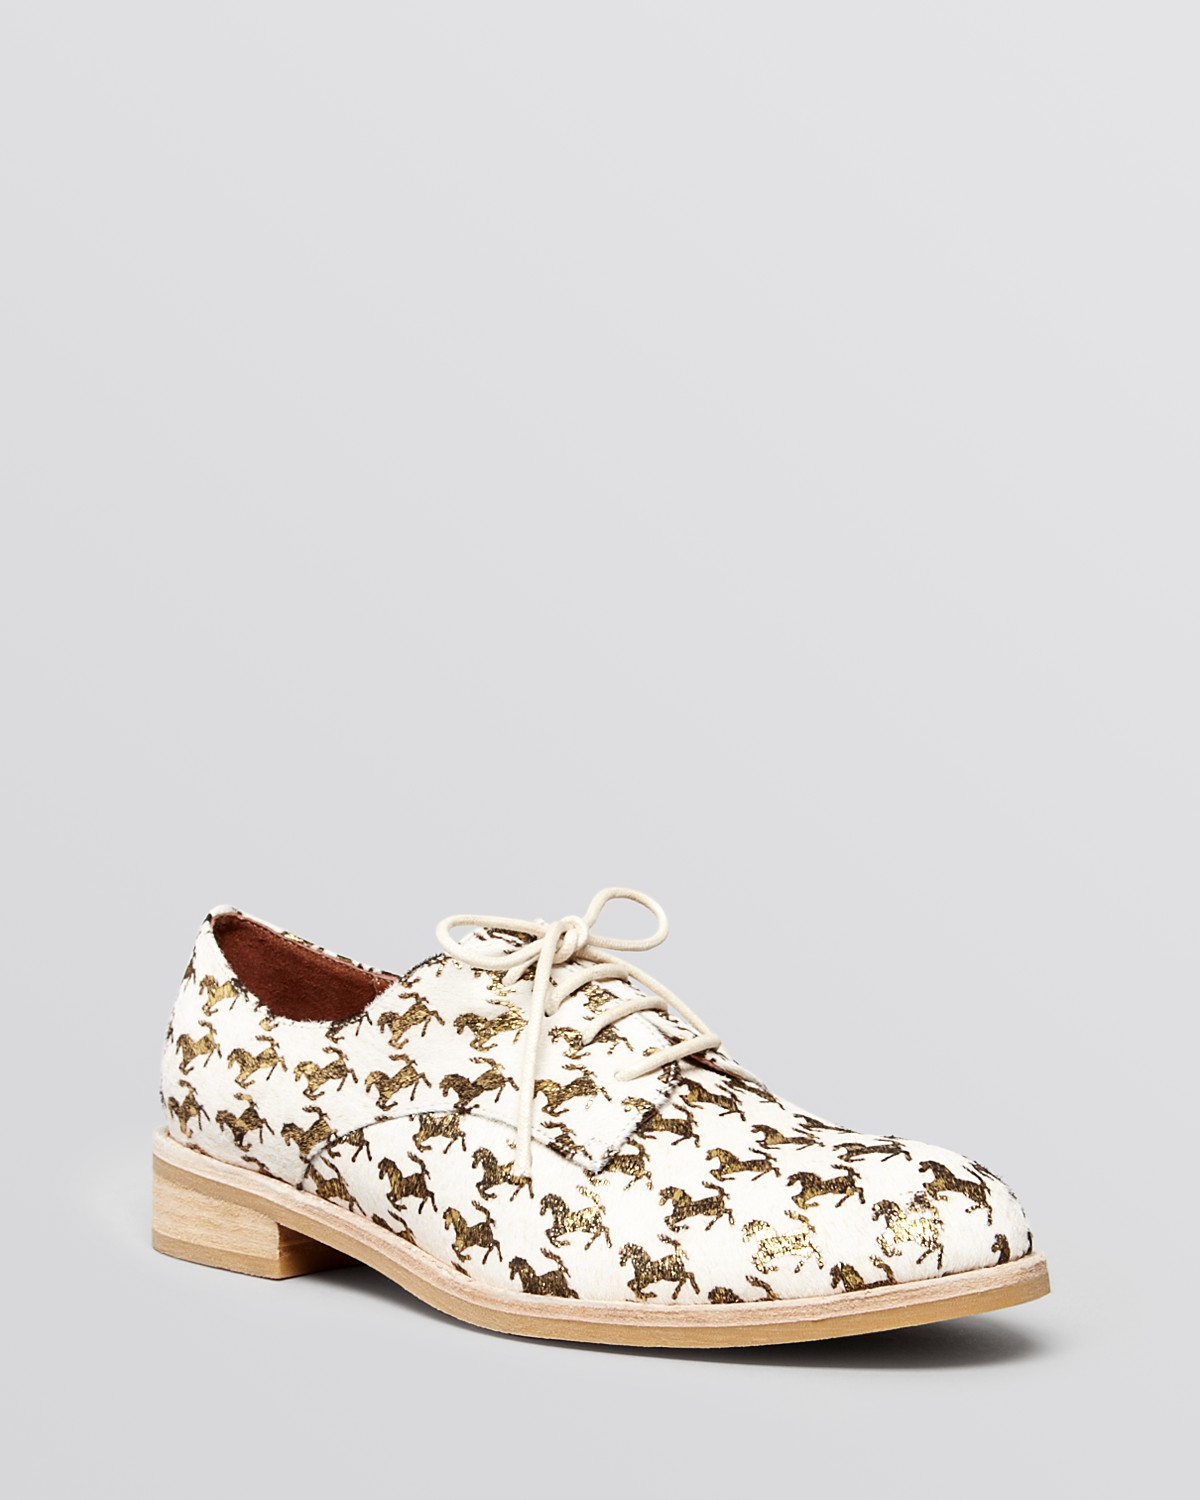 Jeffrey campbell lace up oxford flats